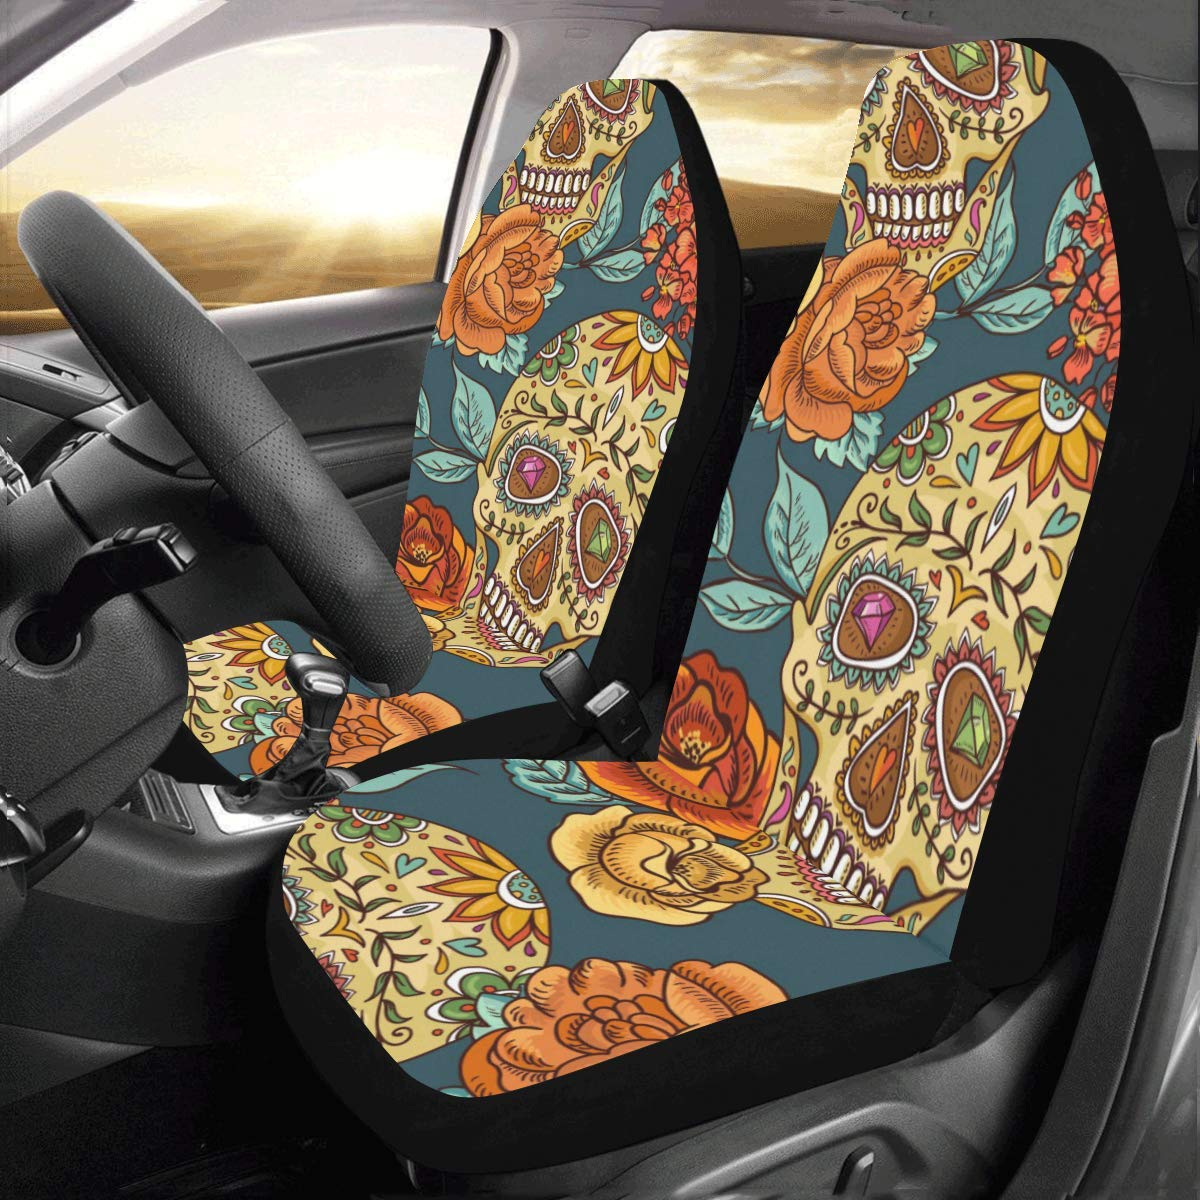 InterestPrint Universal Skull and Flowers Day of The Dead Two Front Car Seat Covers Set -100% Breathable